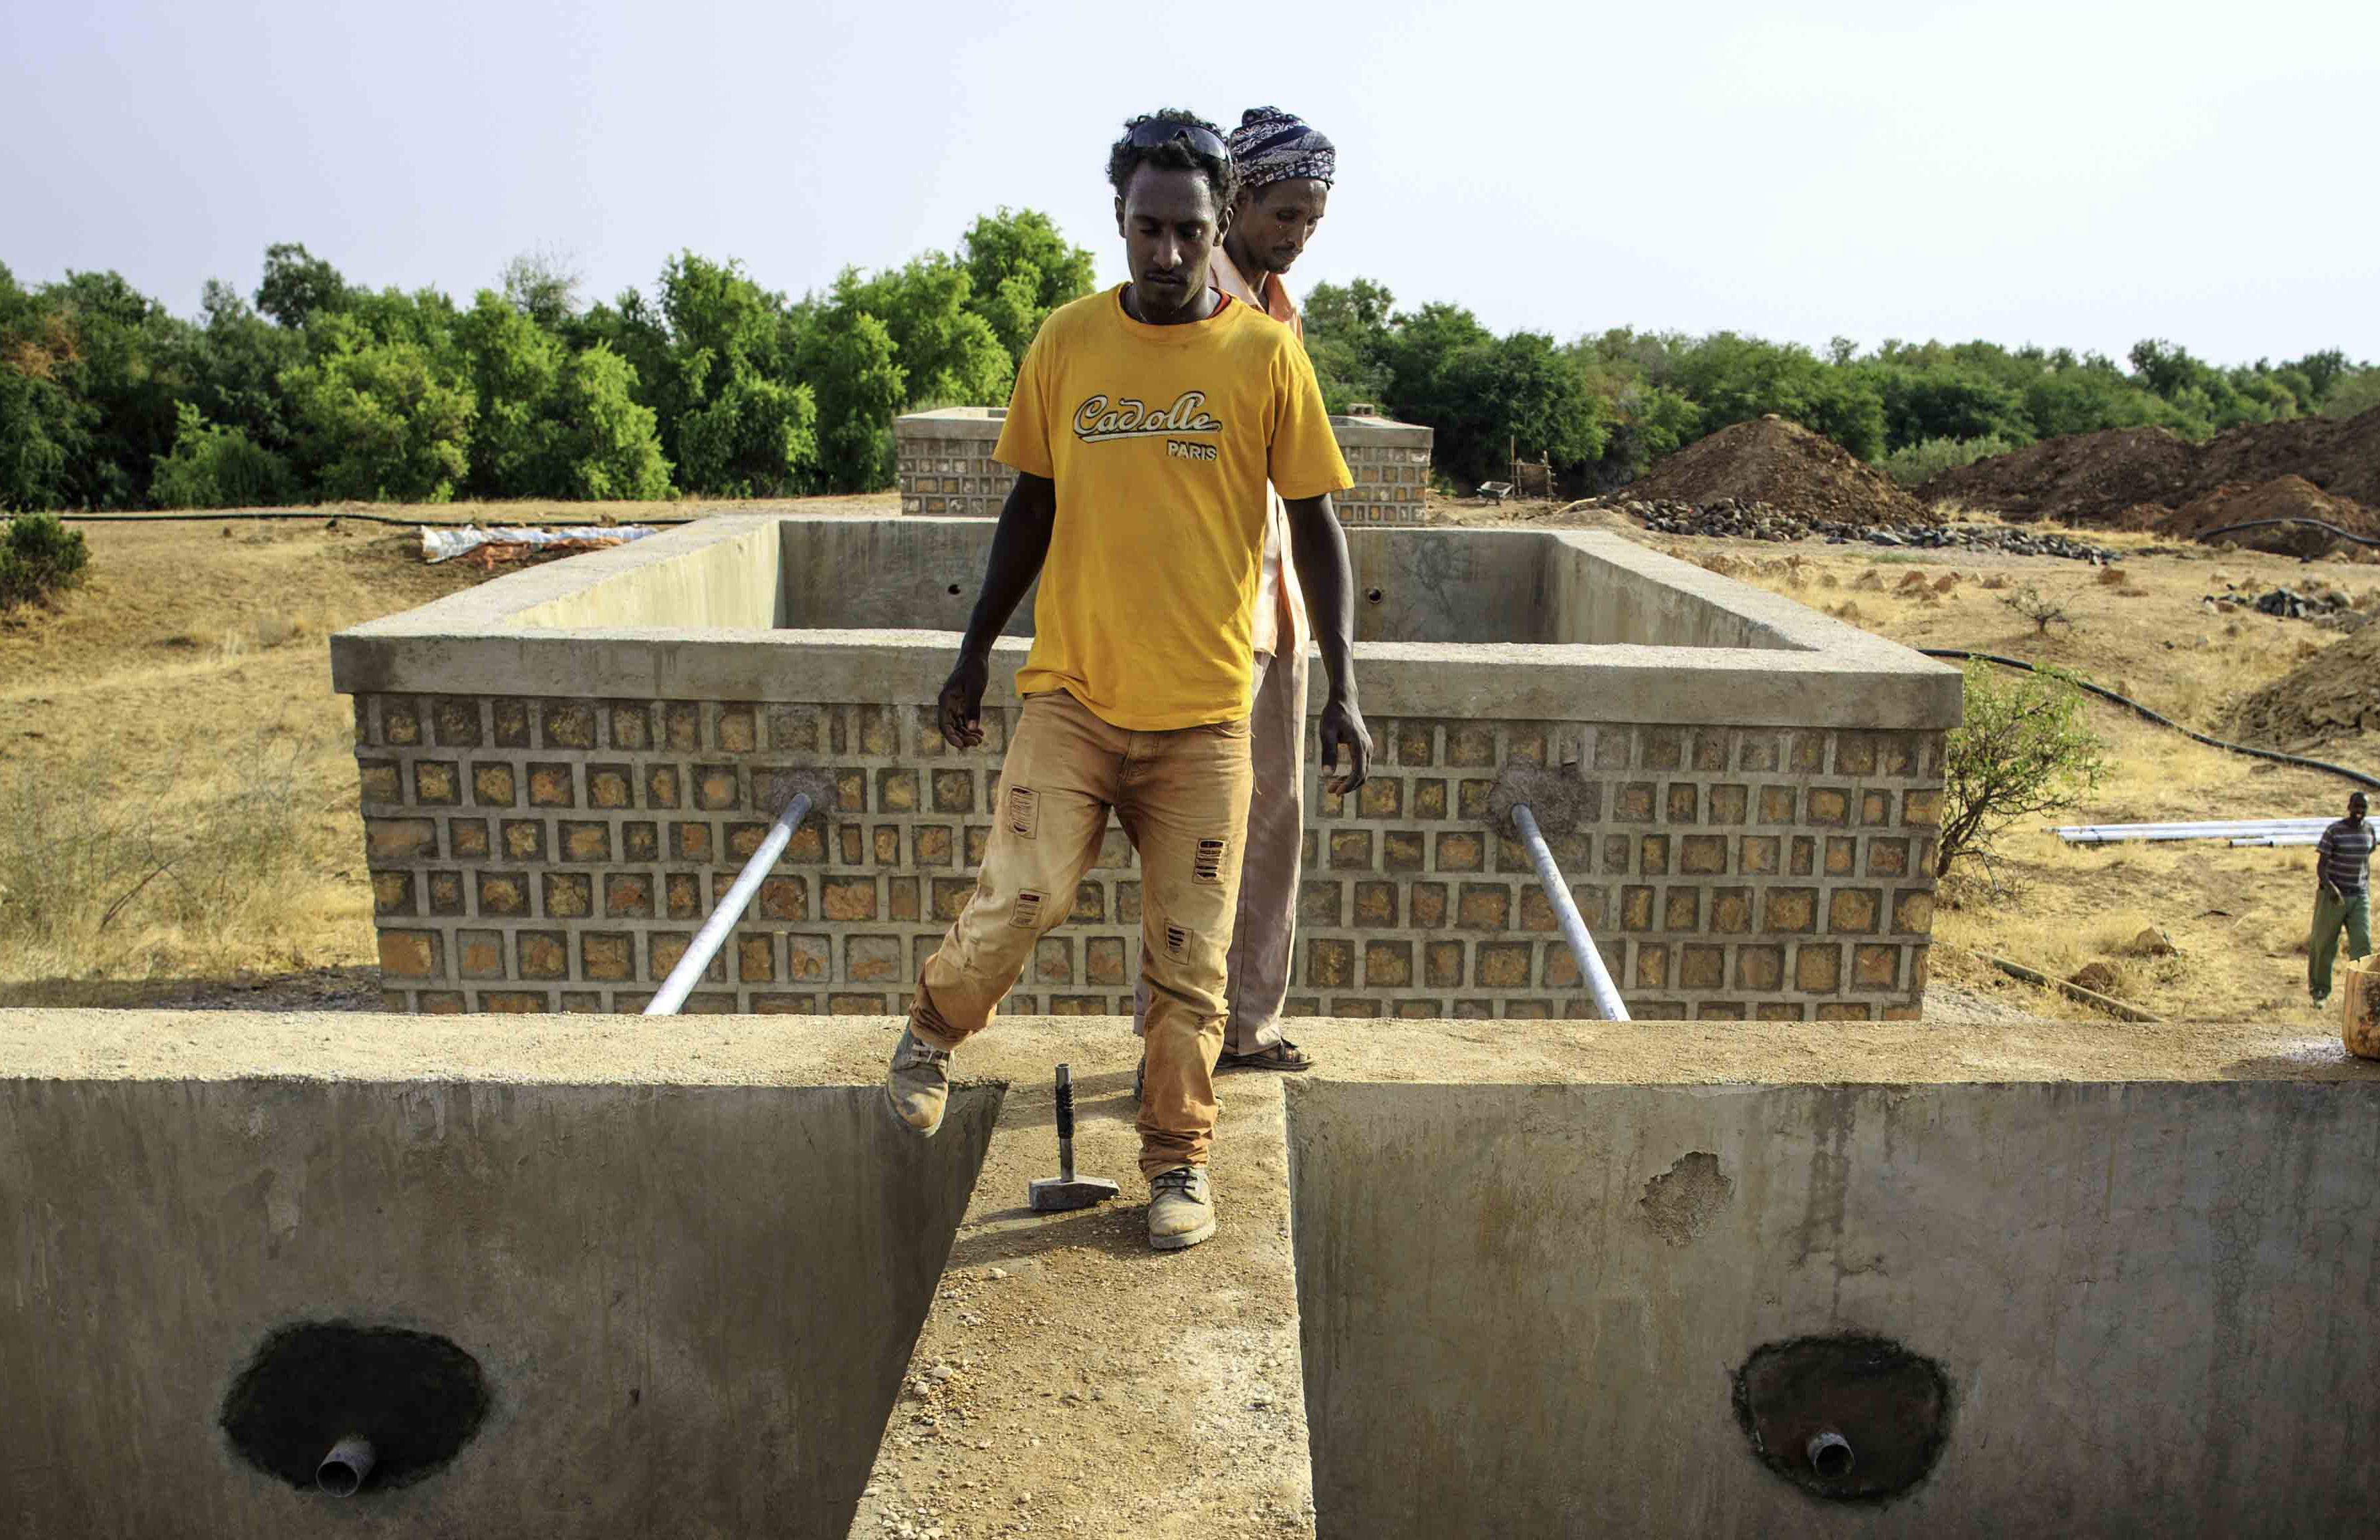 Filtering tanks are filled with gravels inside one of 3 filtering tanks of a river intake construction by Shebele River in Yahas-Jamal Kebele in Somali region of Ethiopia 11 February 2014. In Somali Region water supply coverage is estimated at 59.7%, lower than the national average of 68.5%. The need for water supply normally increases in the dry season, especially at the time of drought such as in recent years. However, the technical and organizational capacity of the Somali Regional State Water Resources Development Bureau (SRWDB) the government agency responsible for water supply and facilities management in the region to satisfy the water supply need is not adequate to cope with the situation. Donor agencies and NGOs are making efforts to ameliorate the situation by constructing and repairing water supply facilities across the region, supplying water by water trucks during chronic shortages, but the supply is still significantly below the demand.